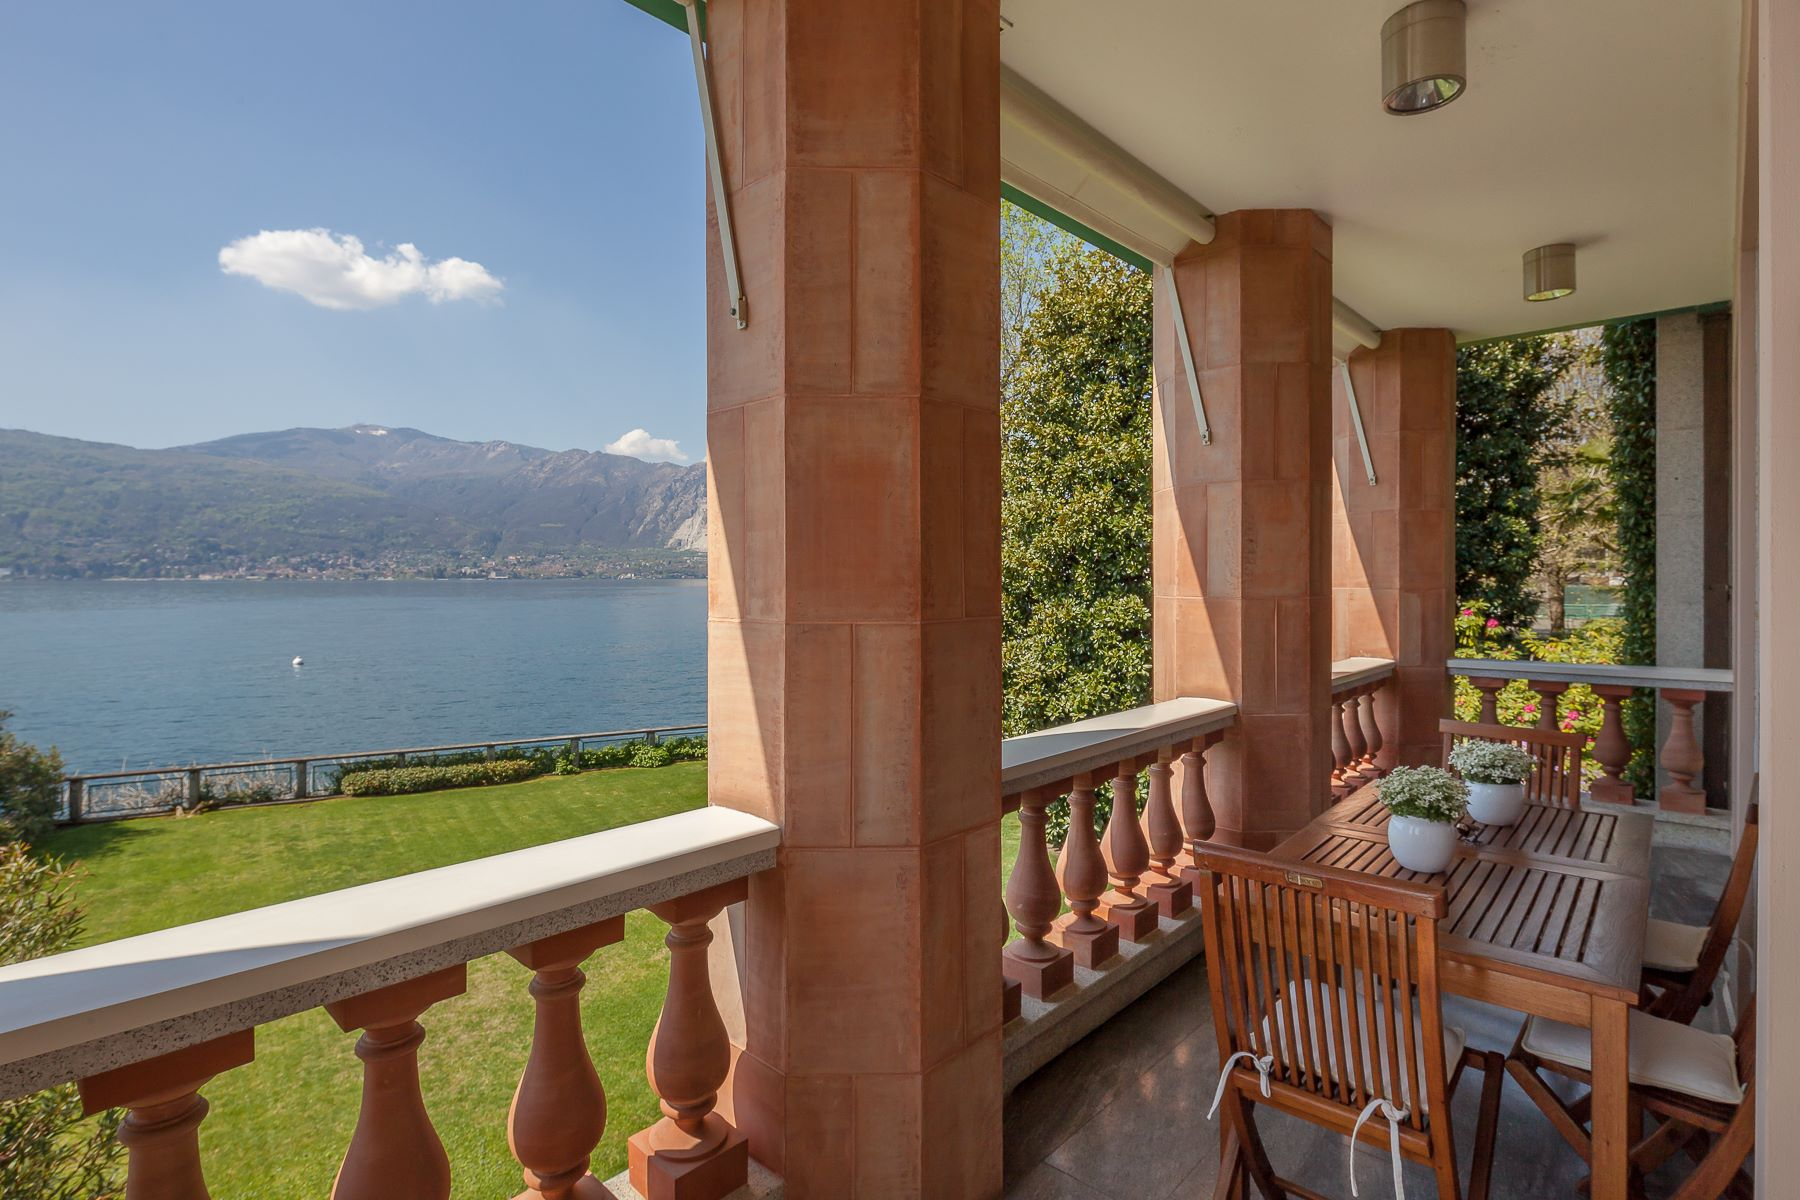 Property for Sale at Villa with access to the lake designed and built by the architect Aldo Rossi Verbania, Verbano Cusio Ossola Italy